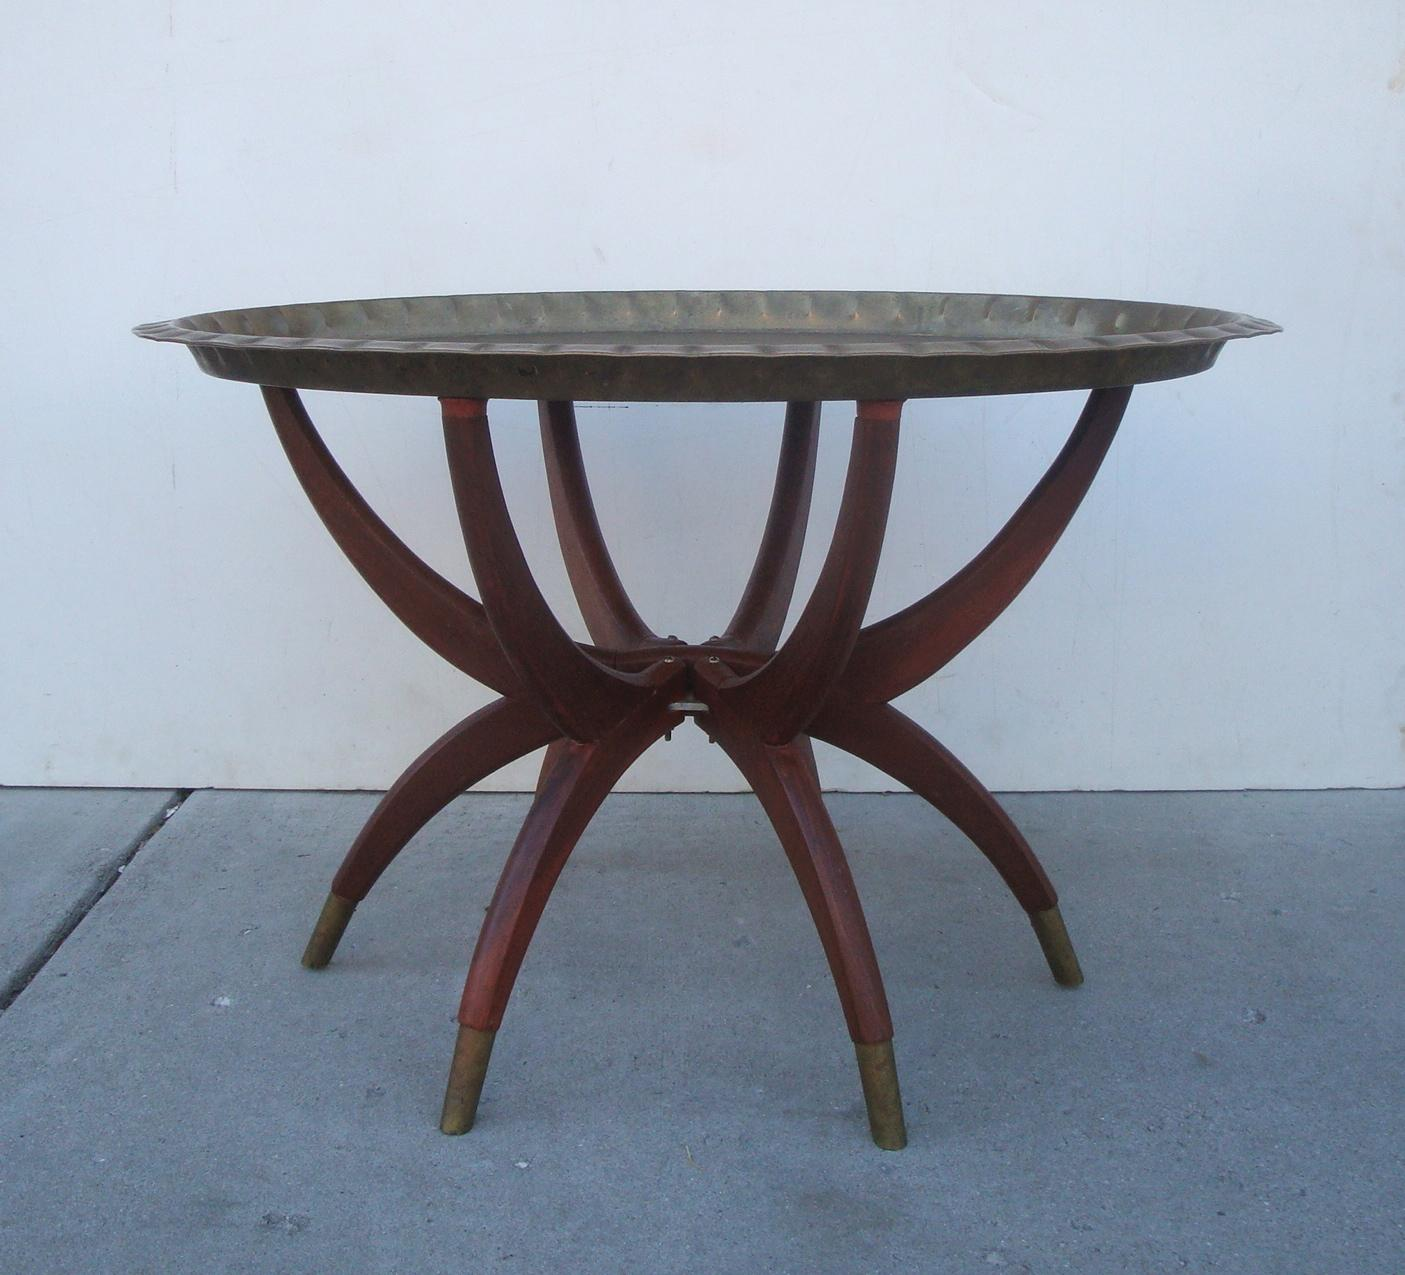 Oval Moroccan Teak U0026 Brass Spider Leg Tray Table   Image 3 ...